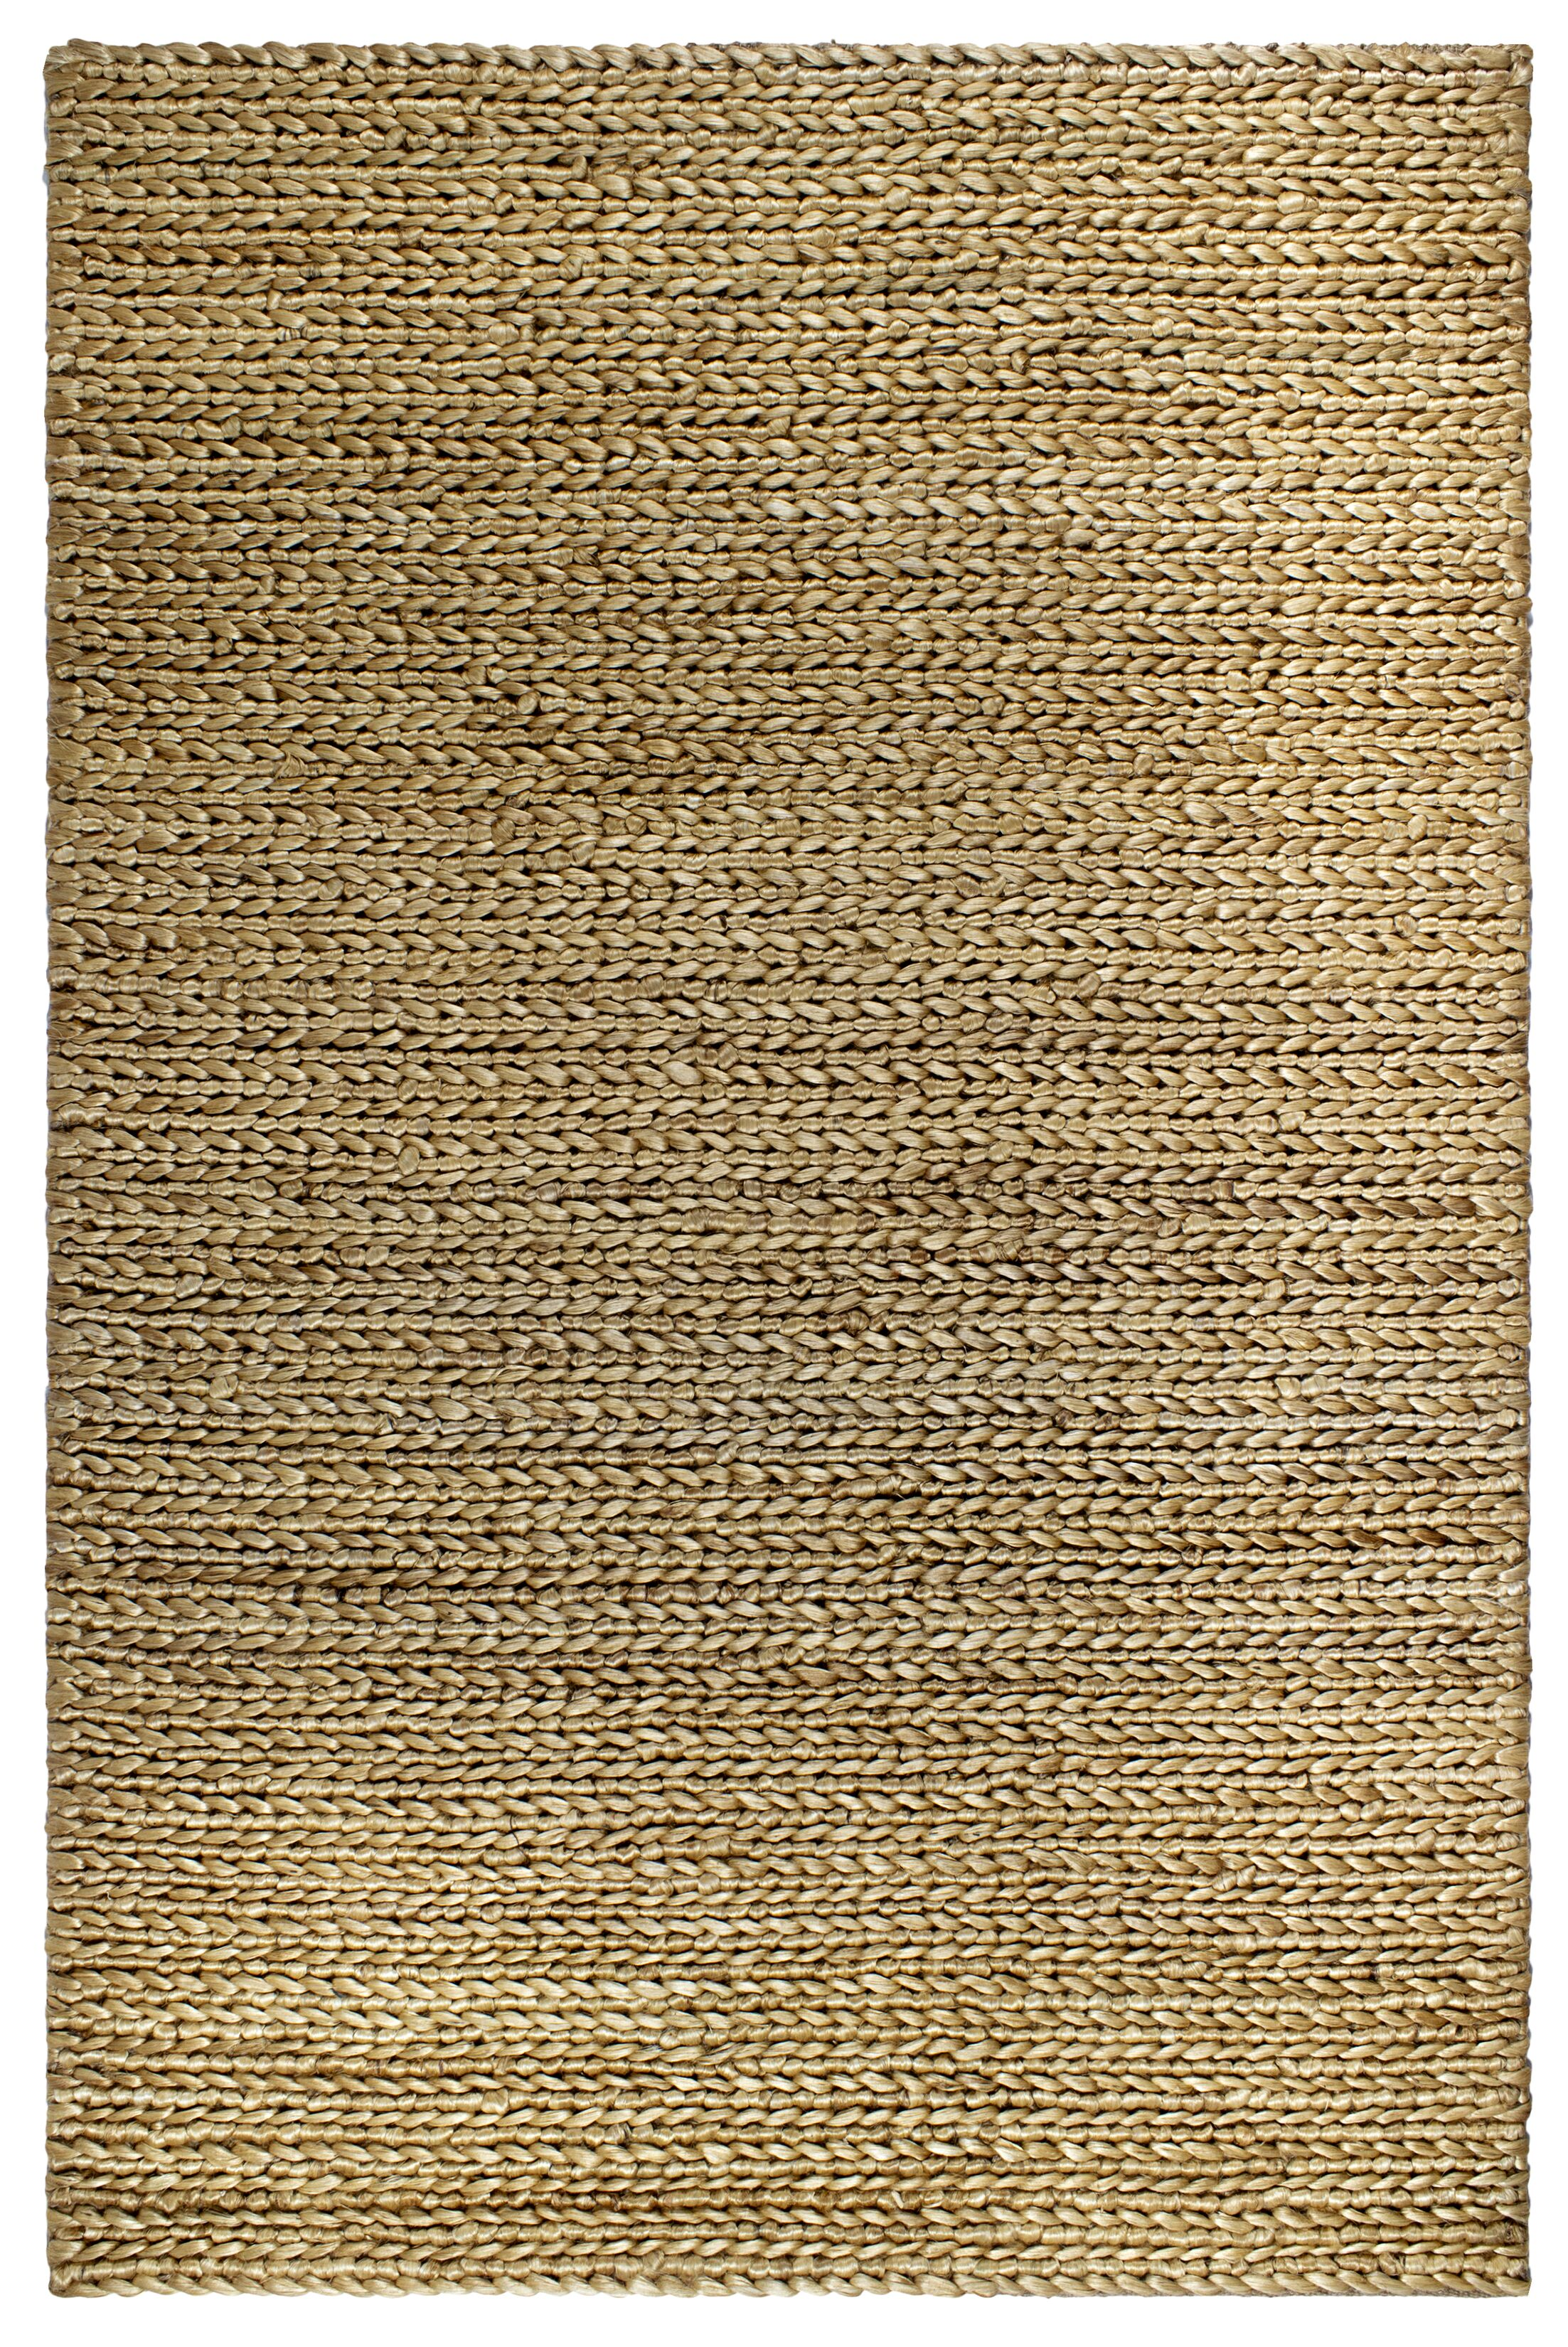 Delmer Carlsbad Hand-Woven Natural Area Rug Rug Size: 3' x 5'